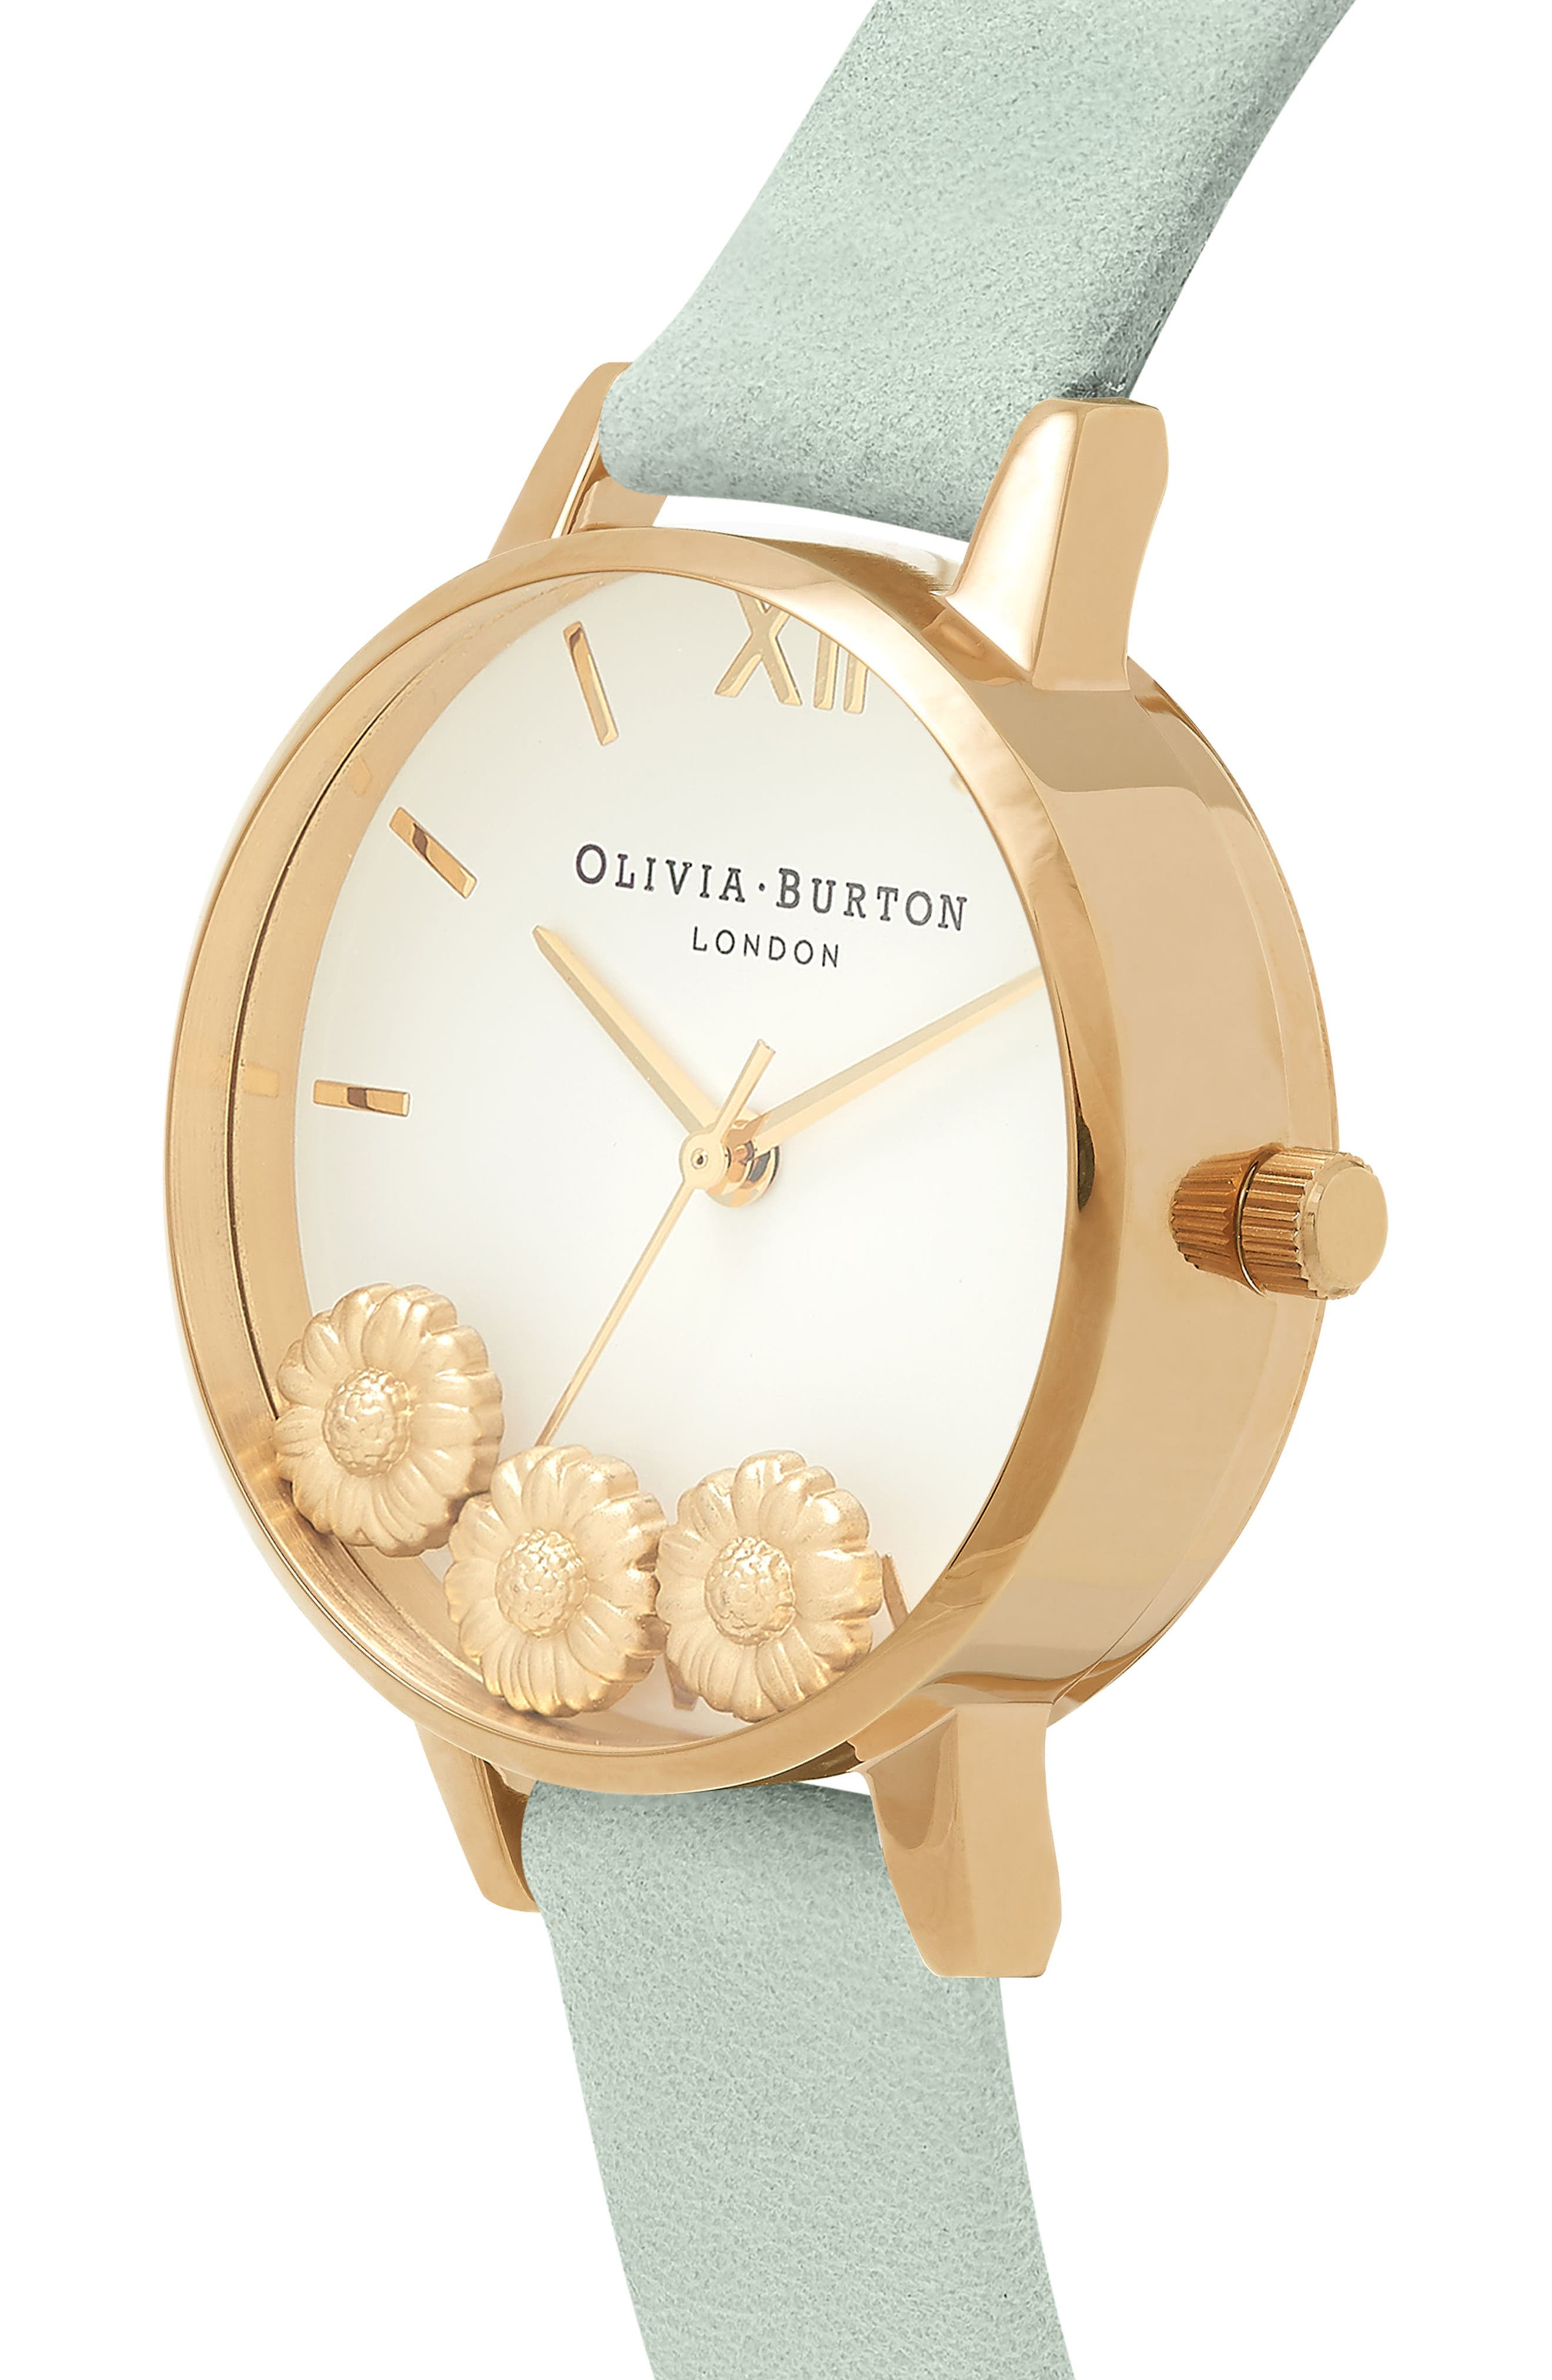 Dancing Daisy Leather Strap Watch, 30mm,                             Alternate thumbnail 3, color,                             SAGE/ WHITE/ GOLD